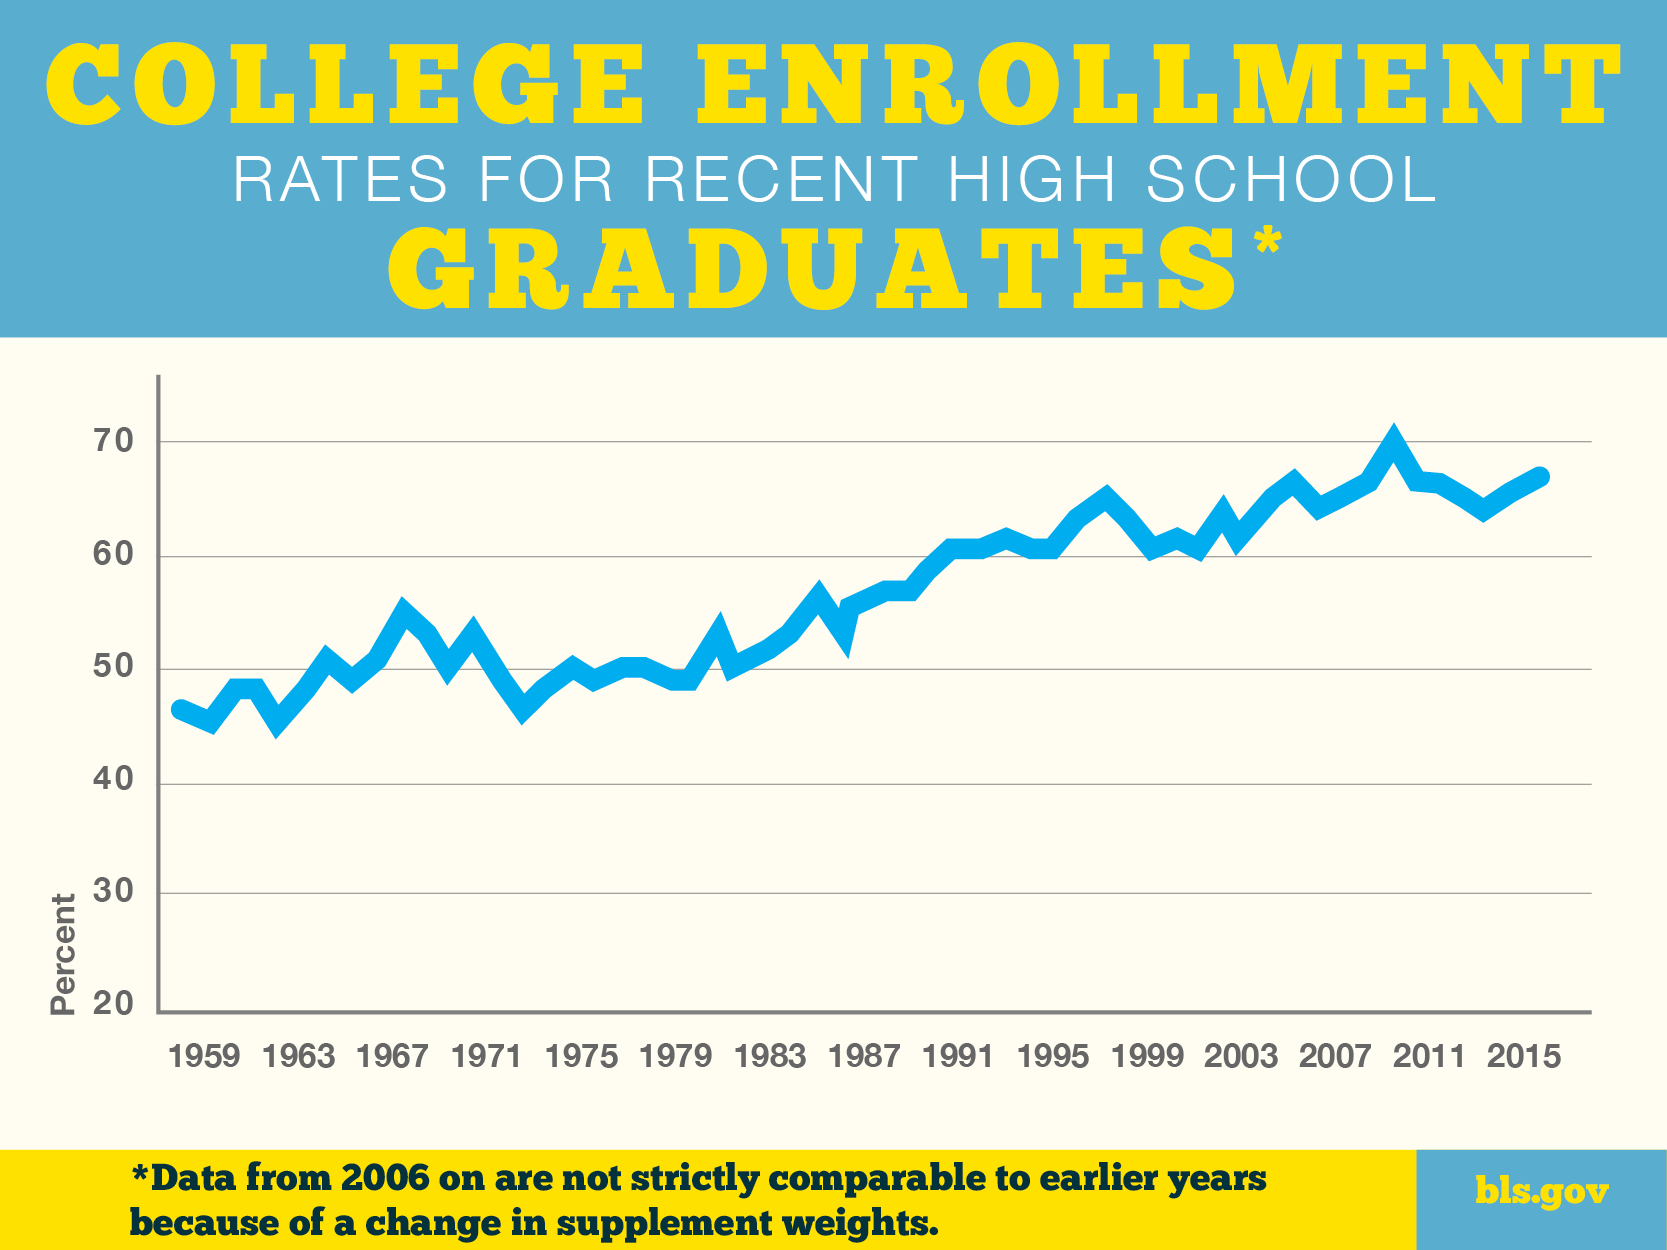 A chart showing college enrollment rates for recent high school graduates from 1959 to 2015.